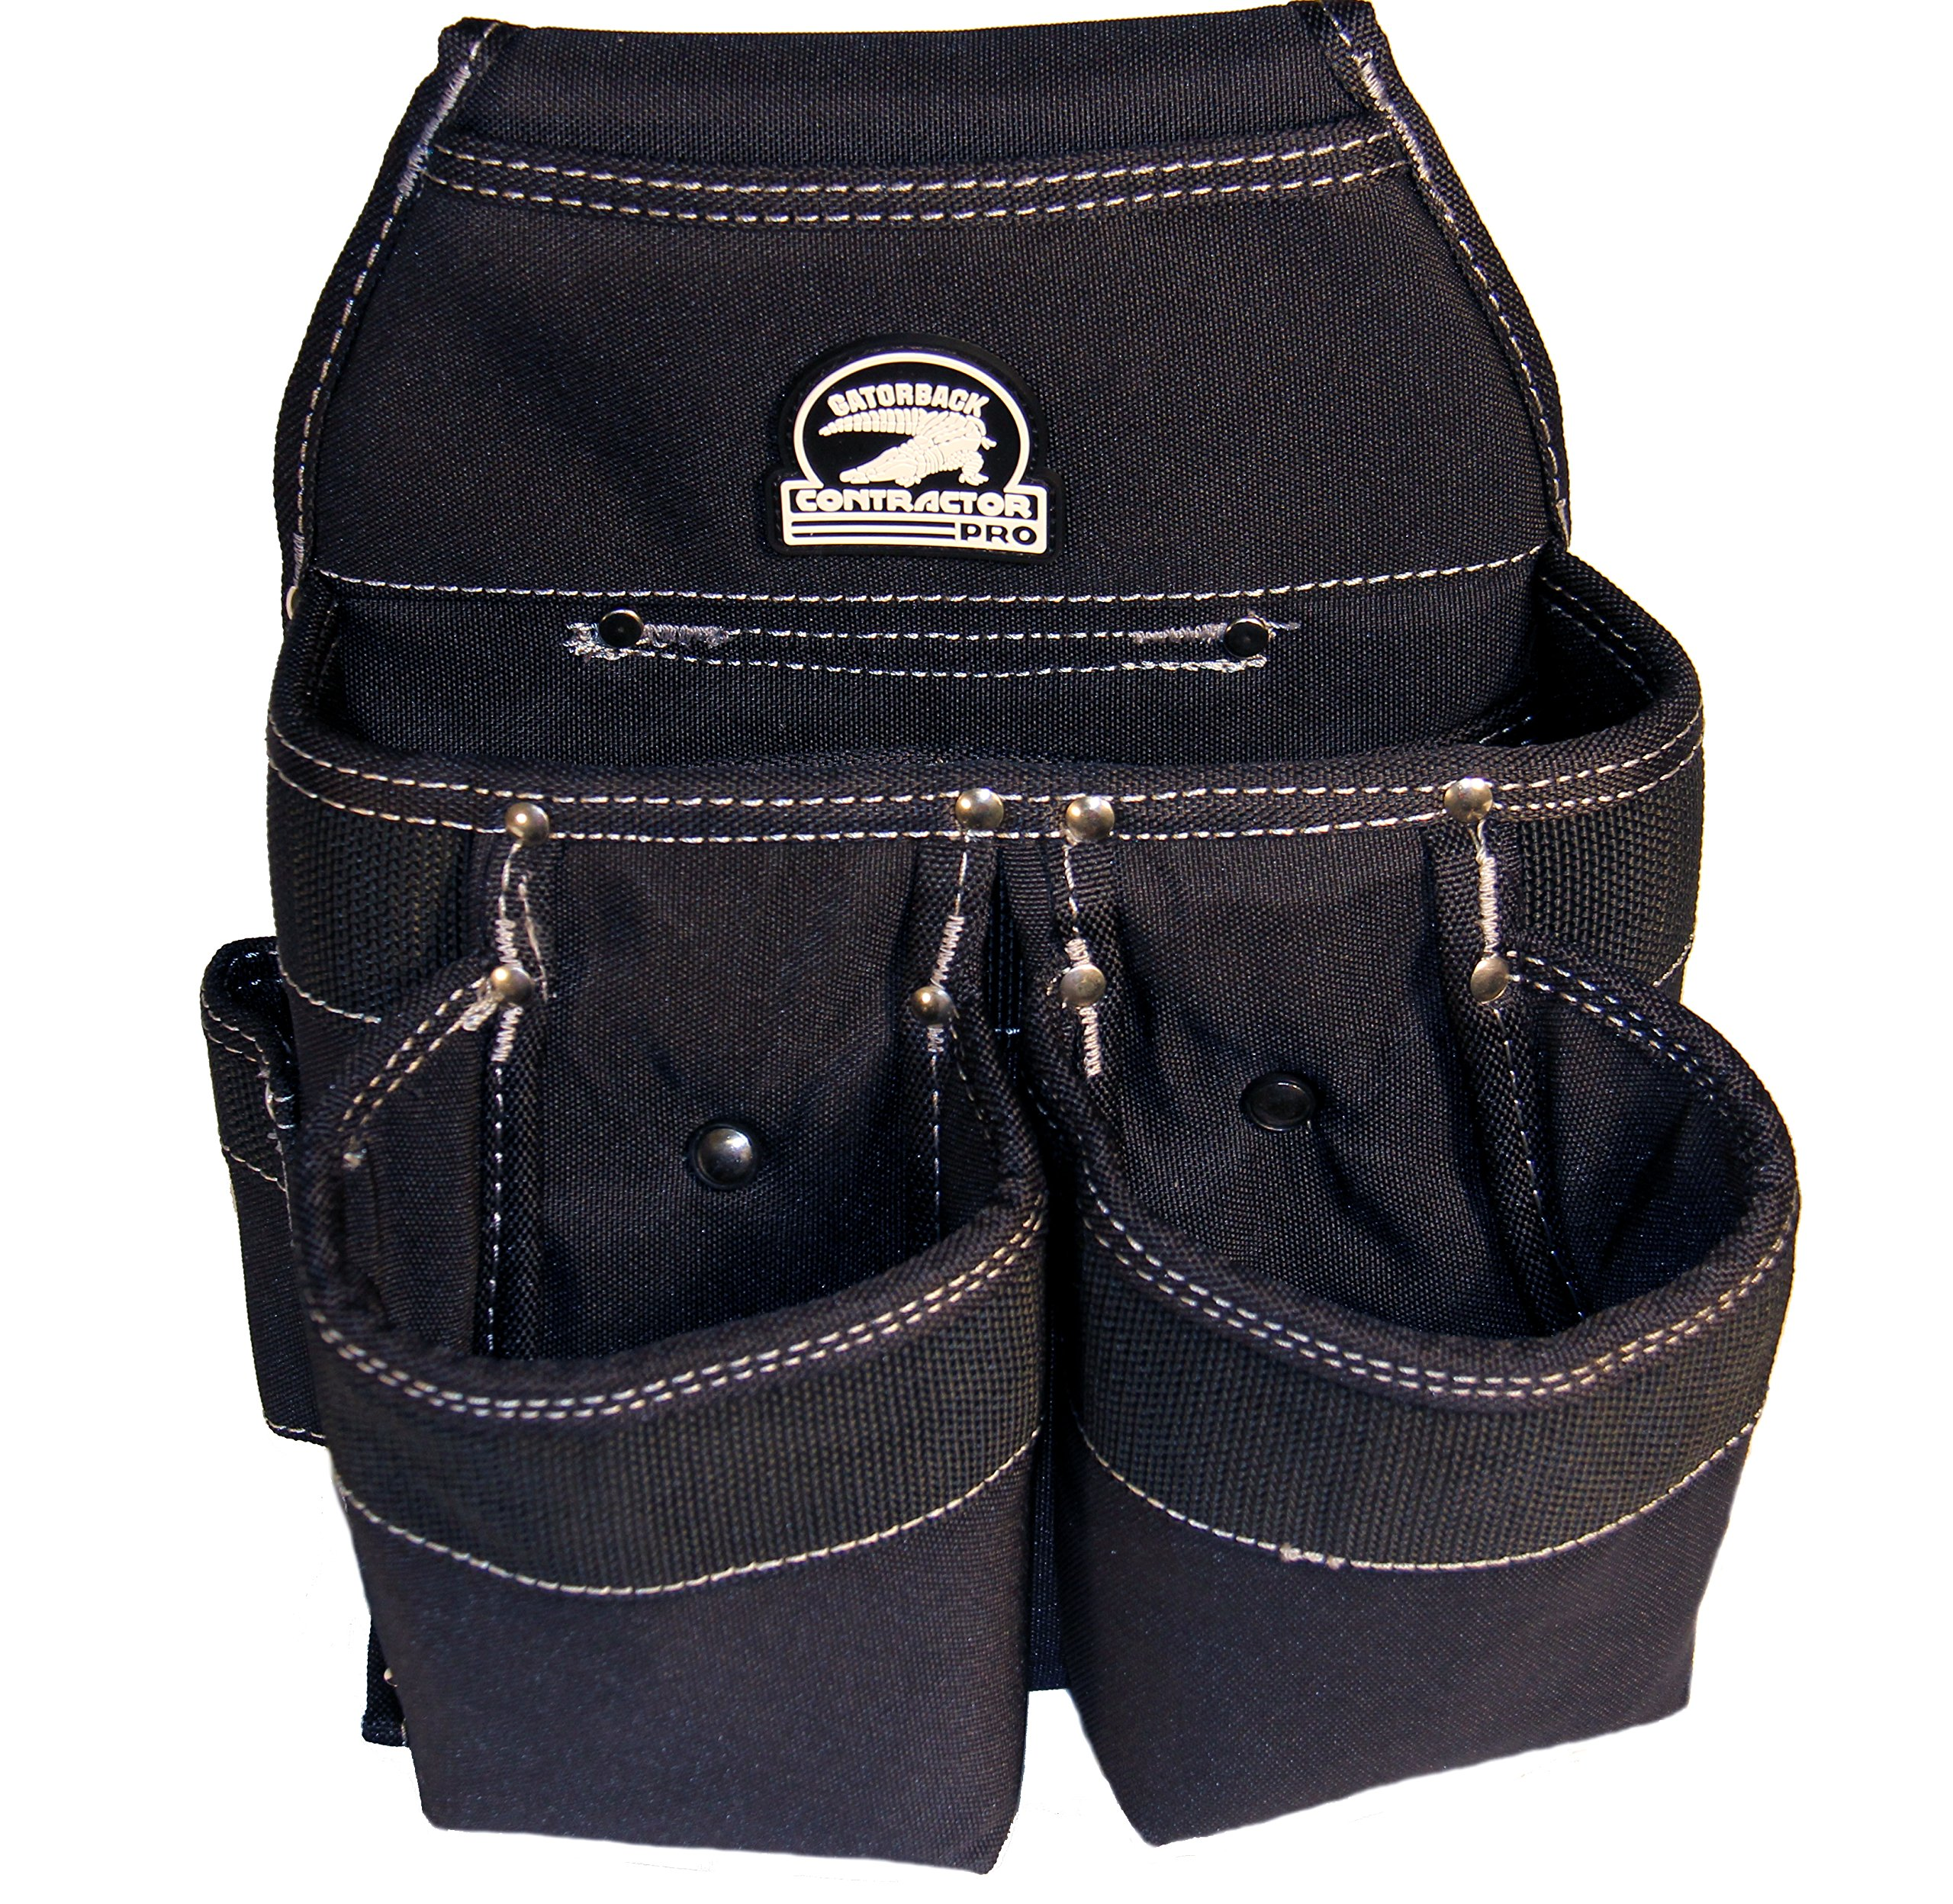 Gatorback Professional Carpenter's Tool Belt Deluxe Package (Tool Belt, Gloves, Suspenders, Drill Holster). Extreme Comfort and Durability (Medium 31'' - 35'' Waist) by Contractor Pro (Image #3)